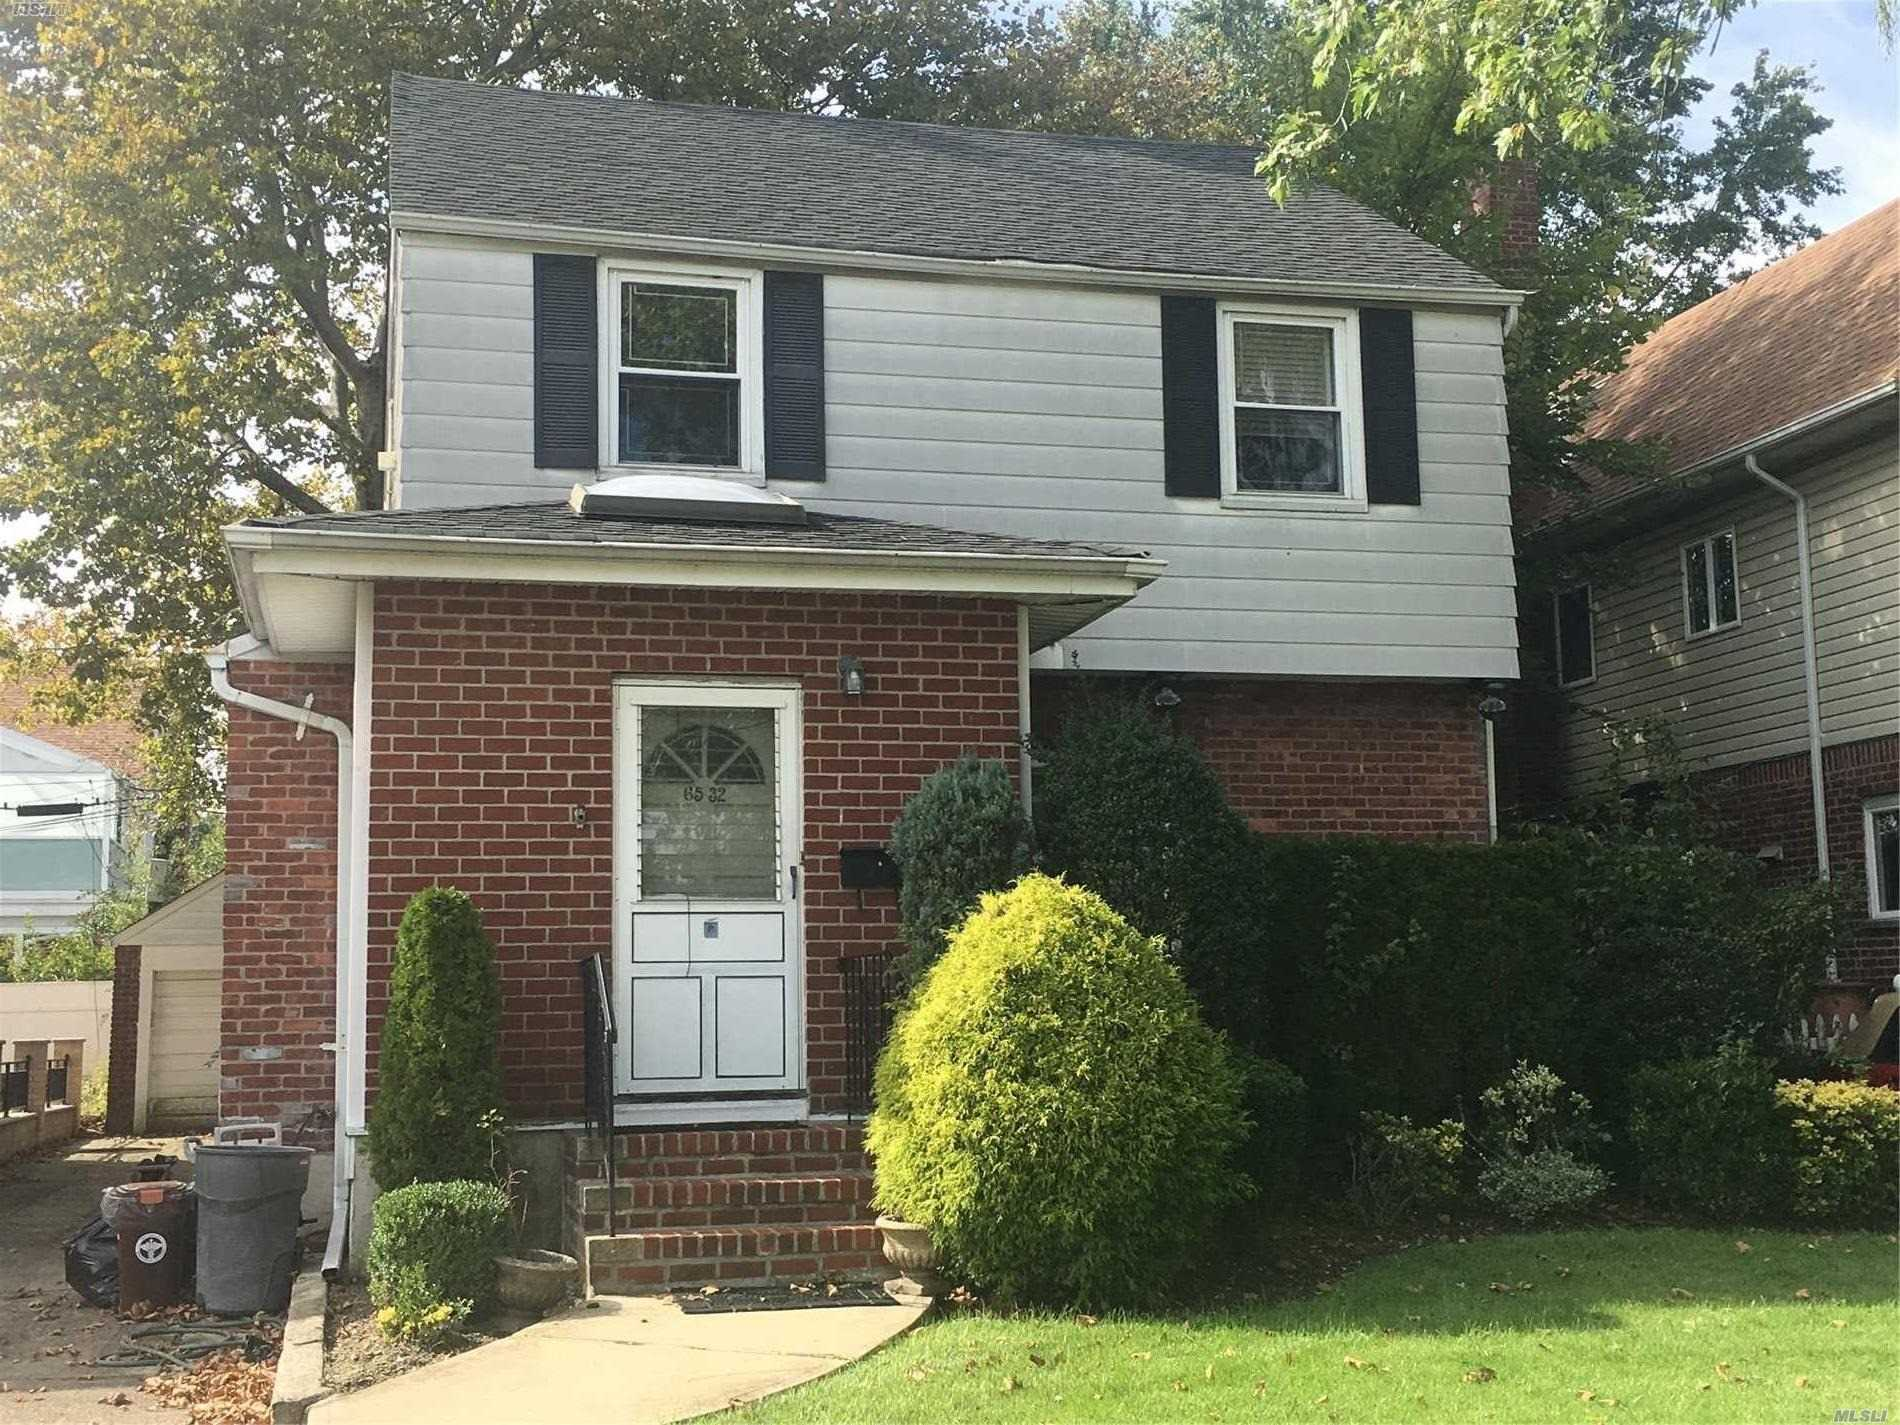 Lovely Detached Colonial In Heart Of Fresh Meadows Features Living Room, Formal Dining Room,  Kitchen, Finished Basement, Patio, Backyard & Garage. Walk To School District #26 Schools, Nr To Queens College,  Buses, Xpress Bus, Near Hways & Shopping. Hurry, Priced To Sell, Won't Last!!